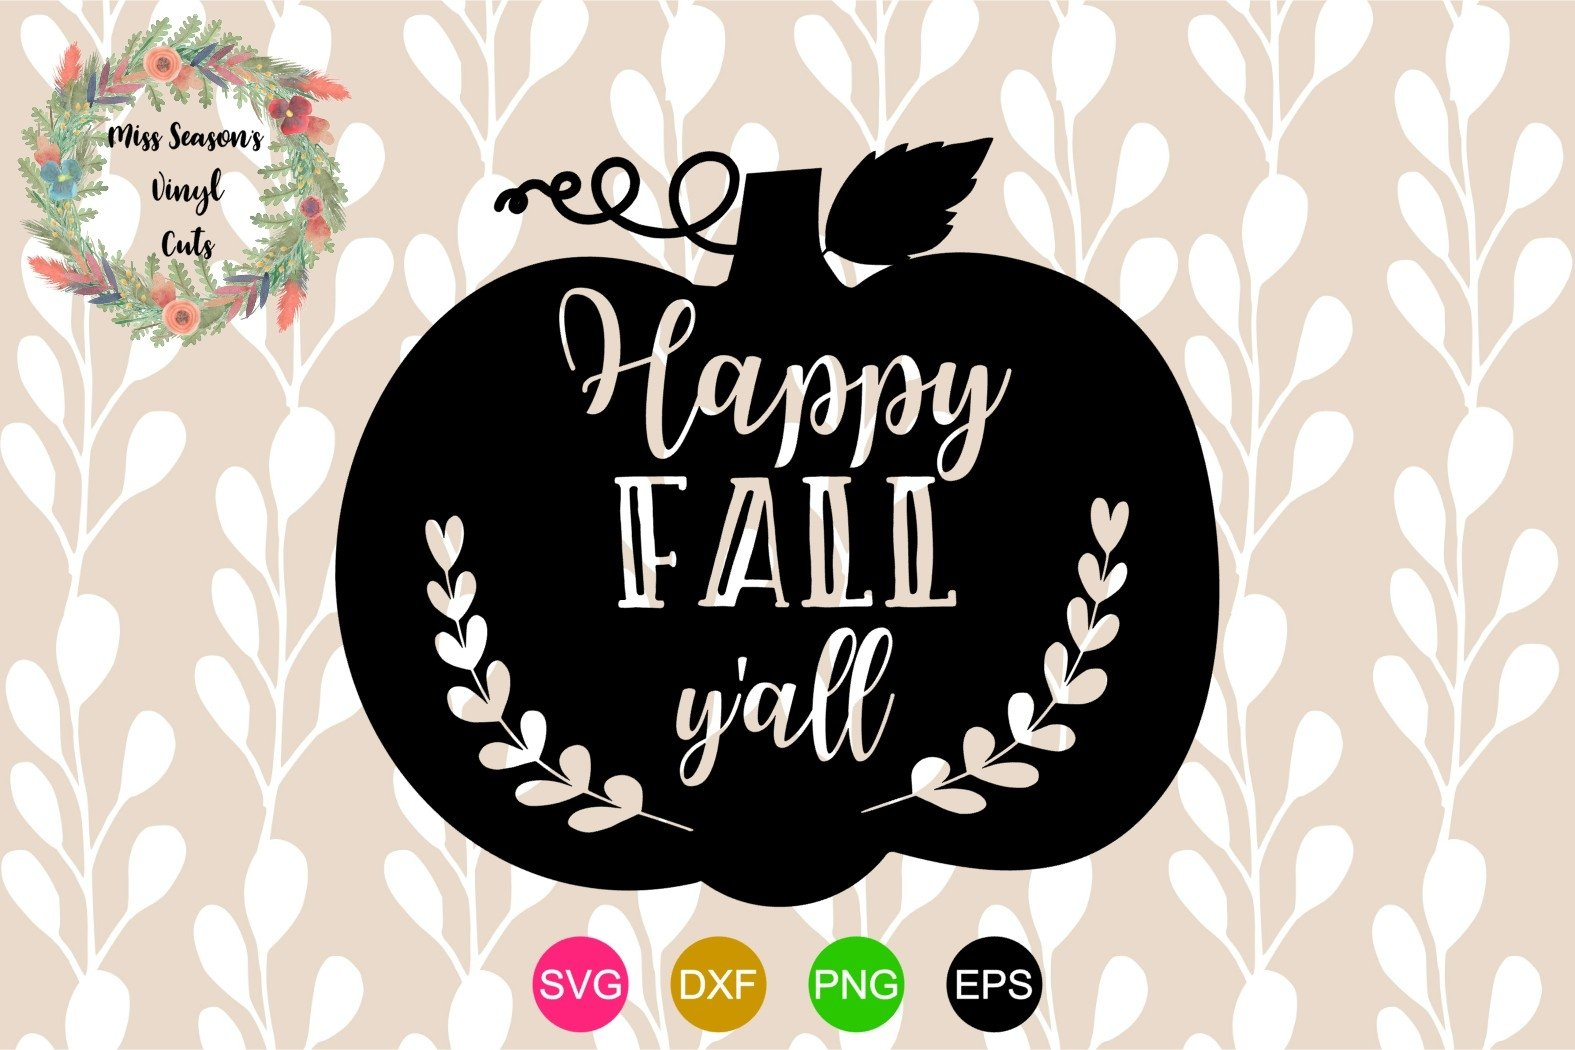 Happy Fall Y All Svg Dxf Eps Png Fal 320454 Cut Files Design Bundles